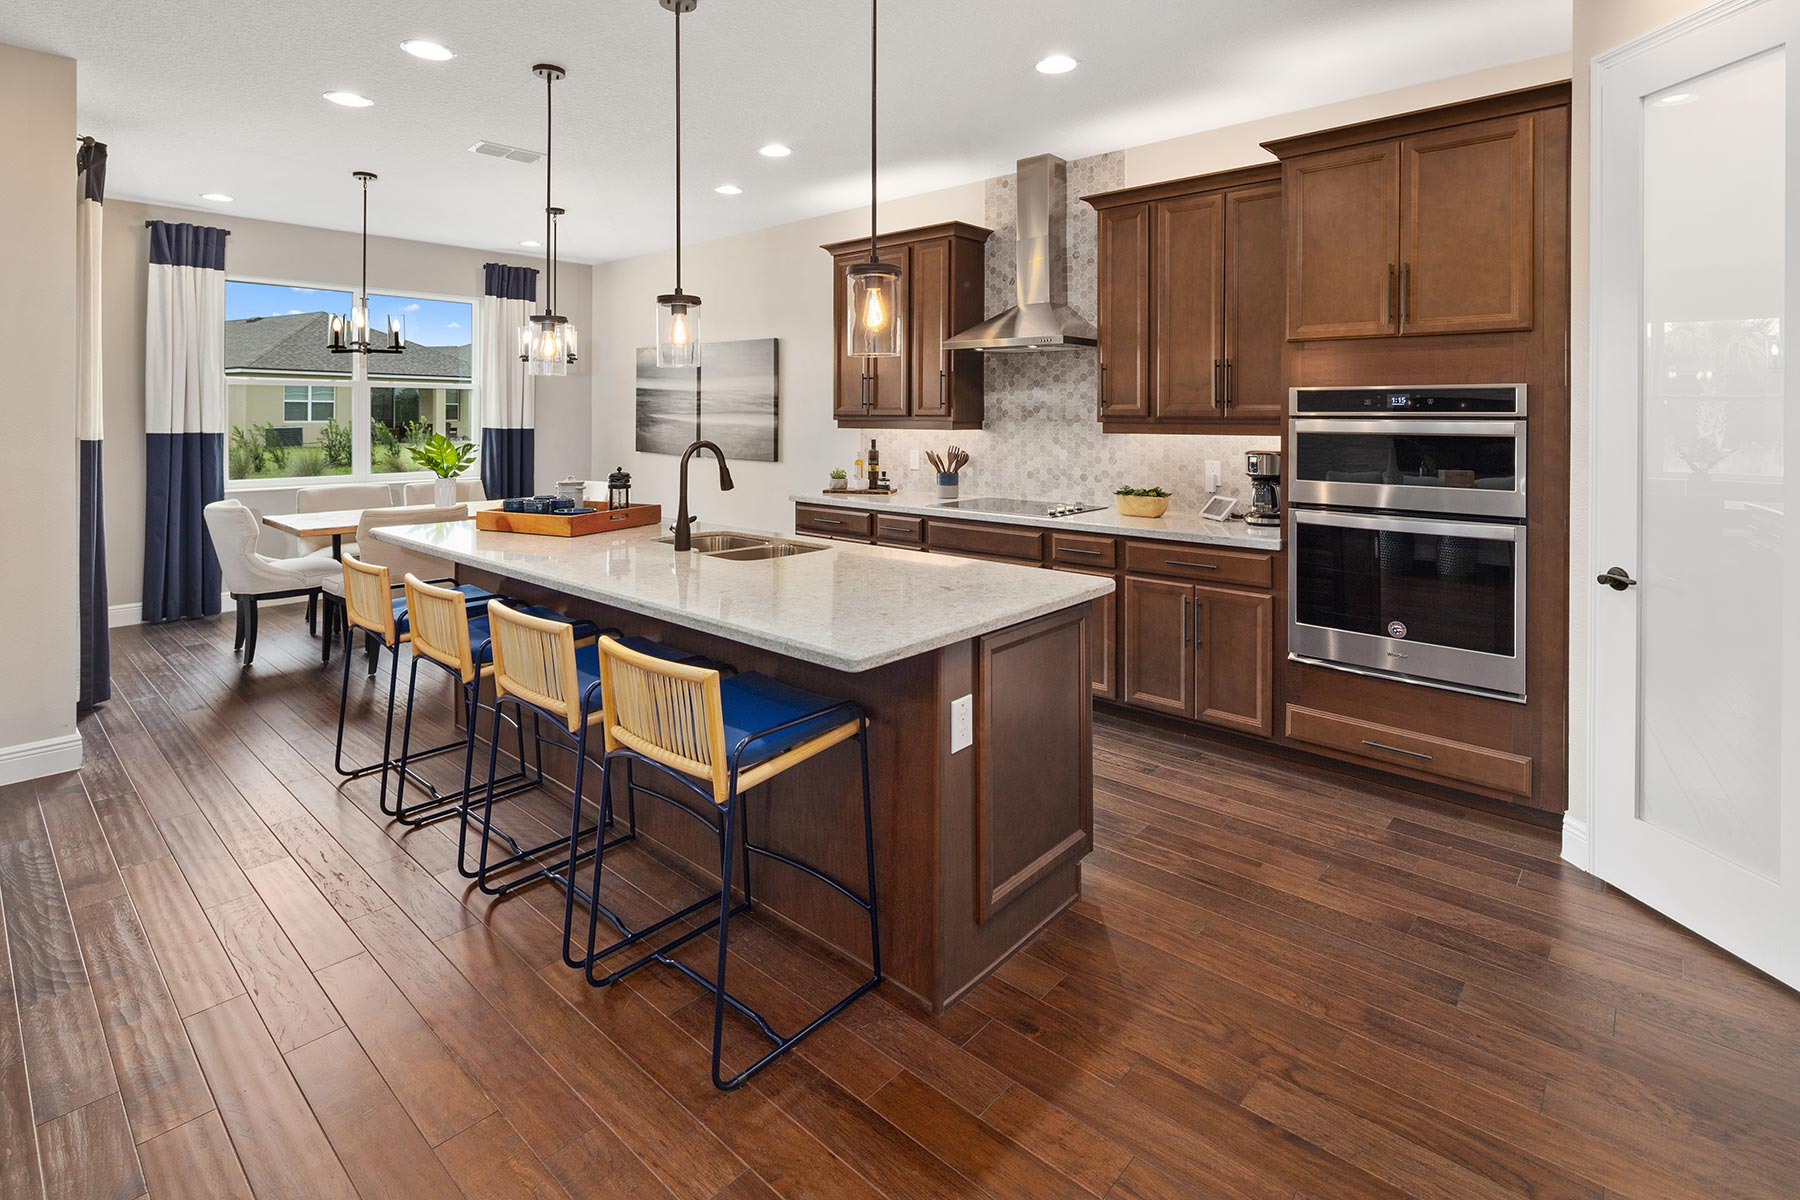 Glendale Plan Kitchen at Tohoqua in Kissimmee Florida by Mattamy Homes